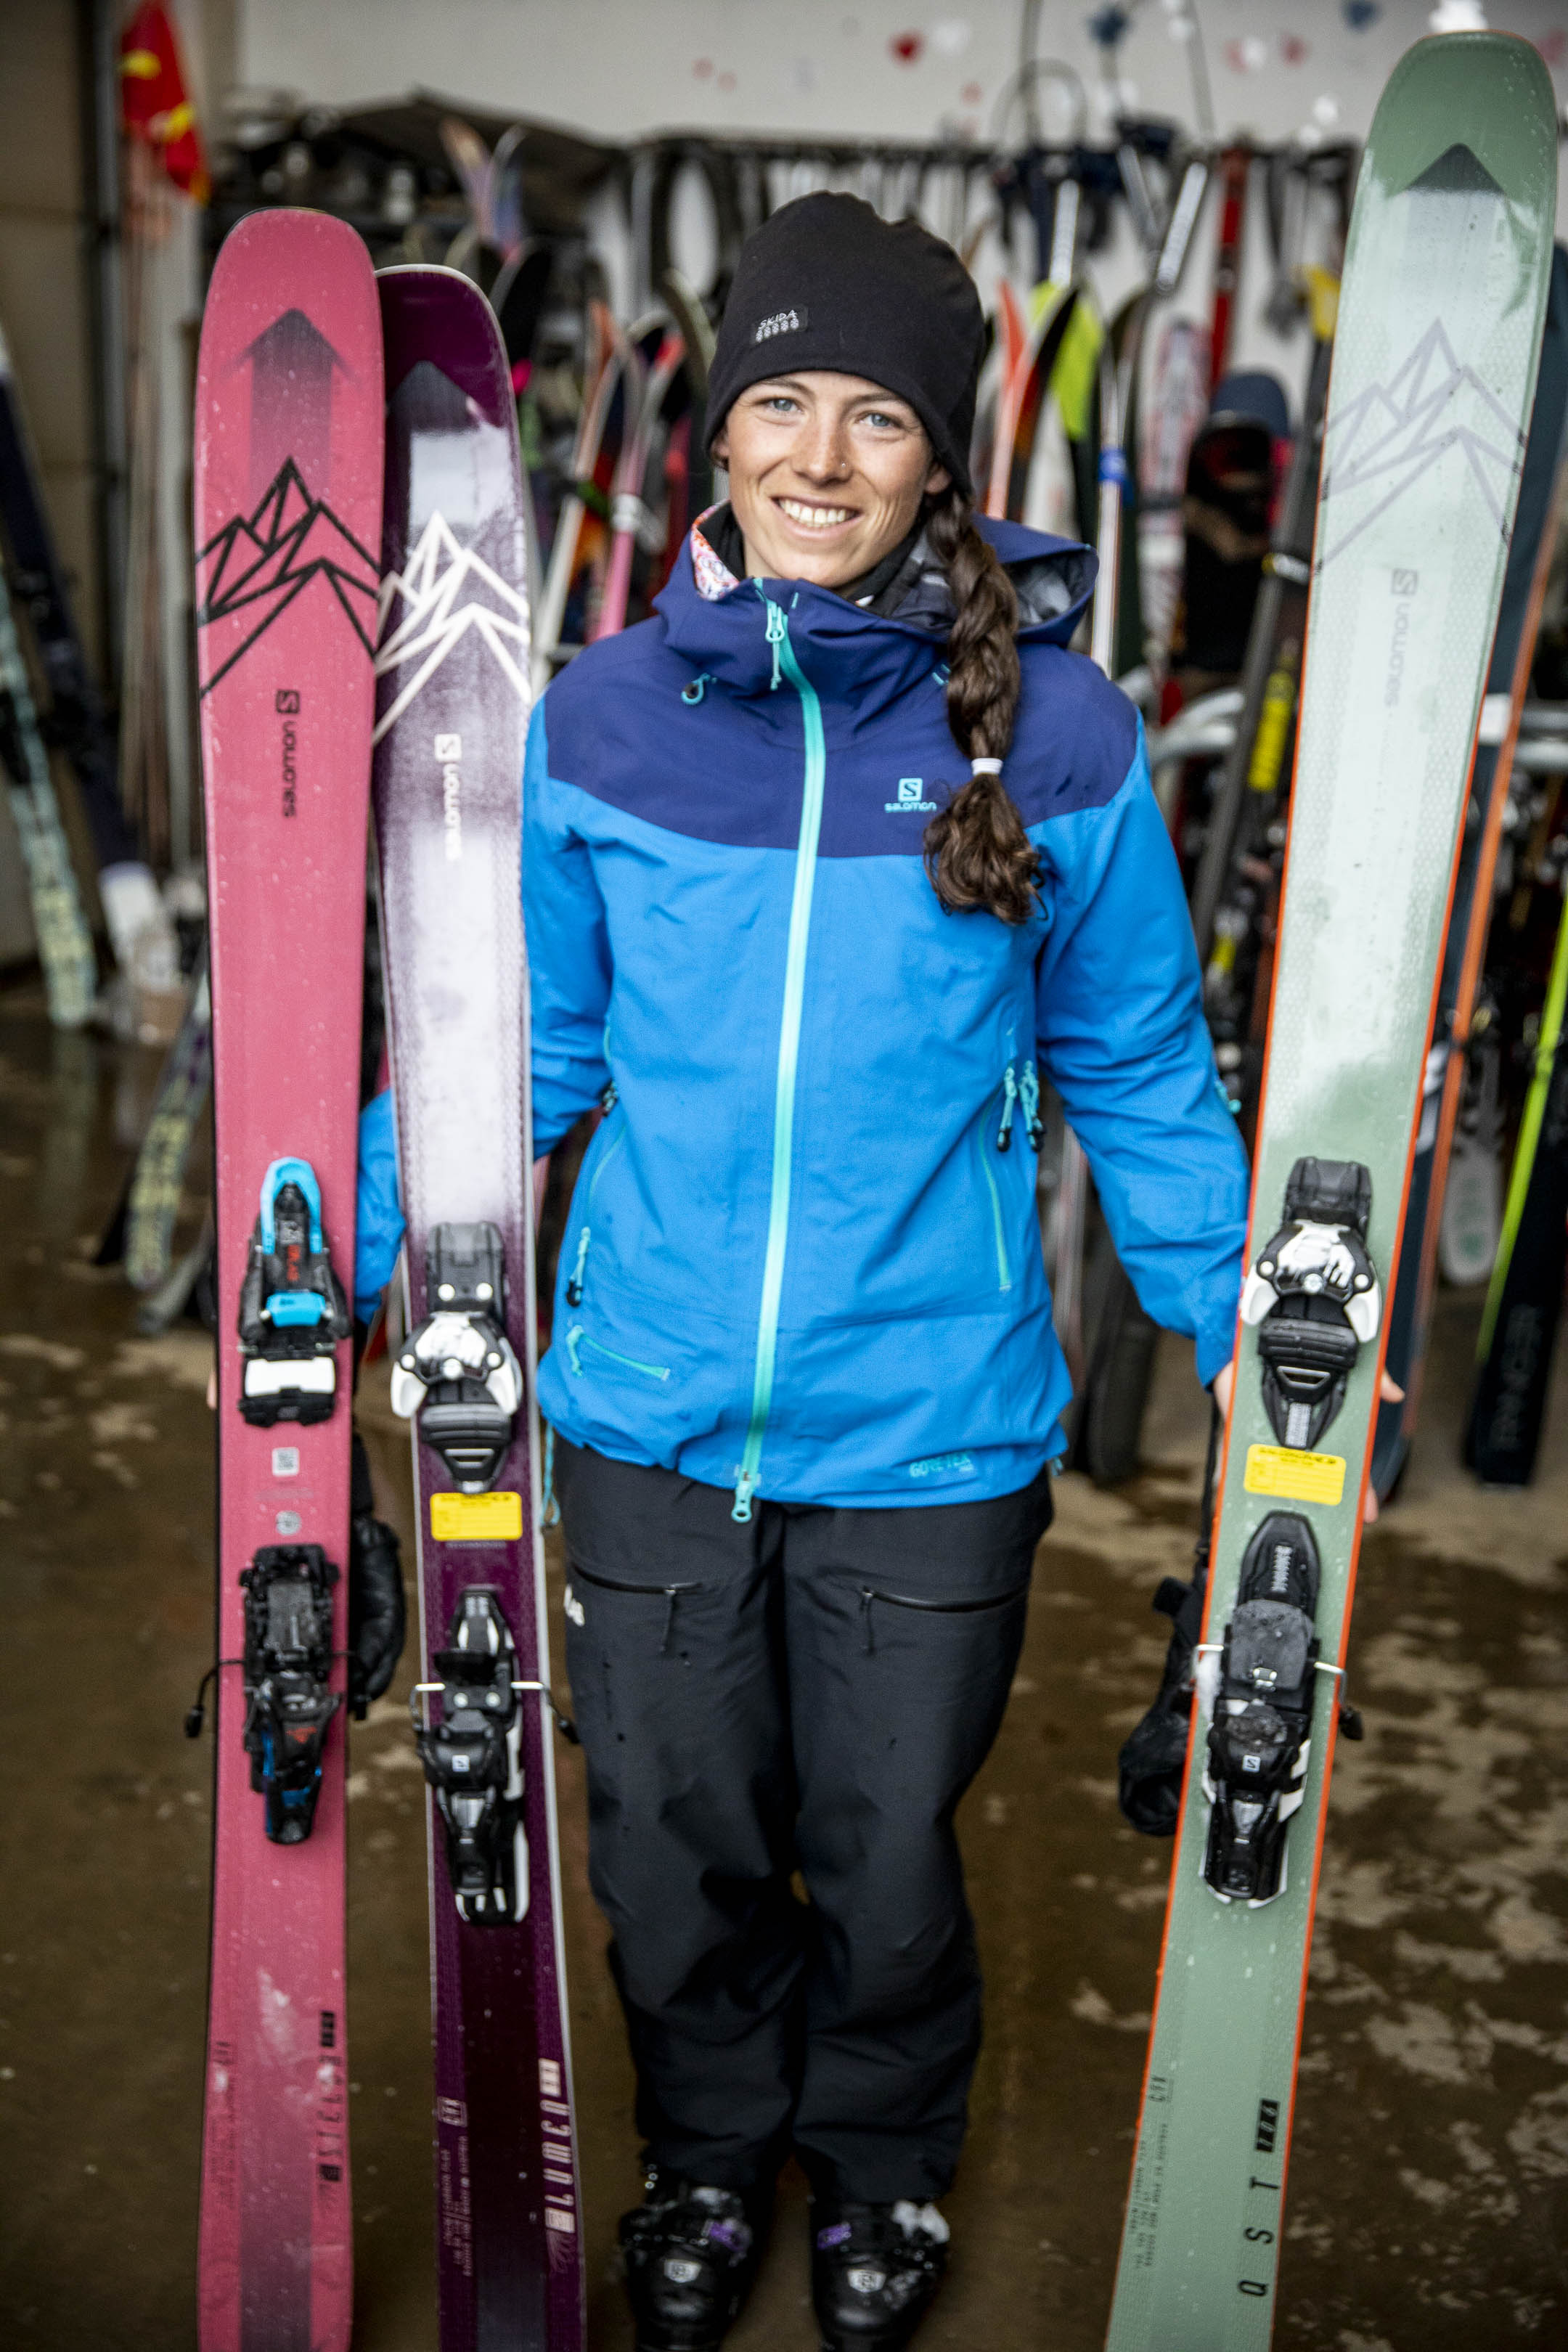 Gallery] Next year's skis, as seen at the 17th annual